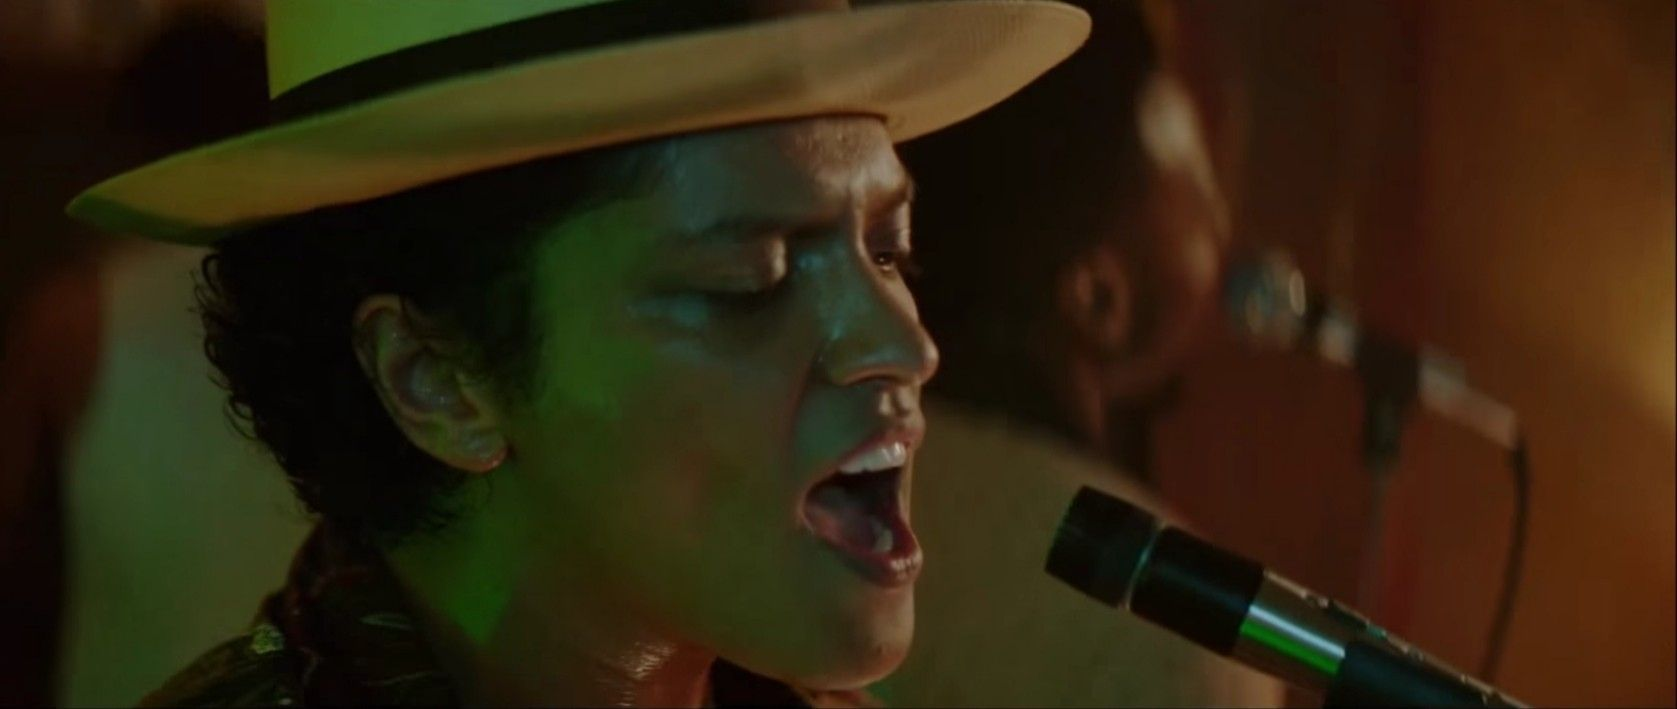 Pin By Gillian Vickers On Bruno Mars Videos